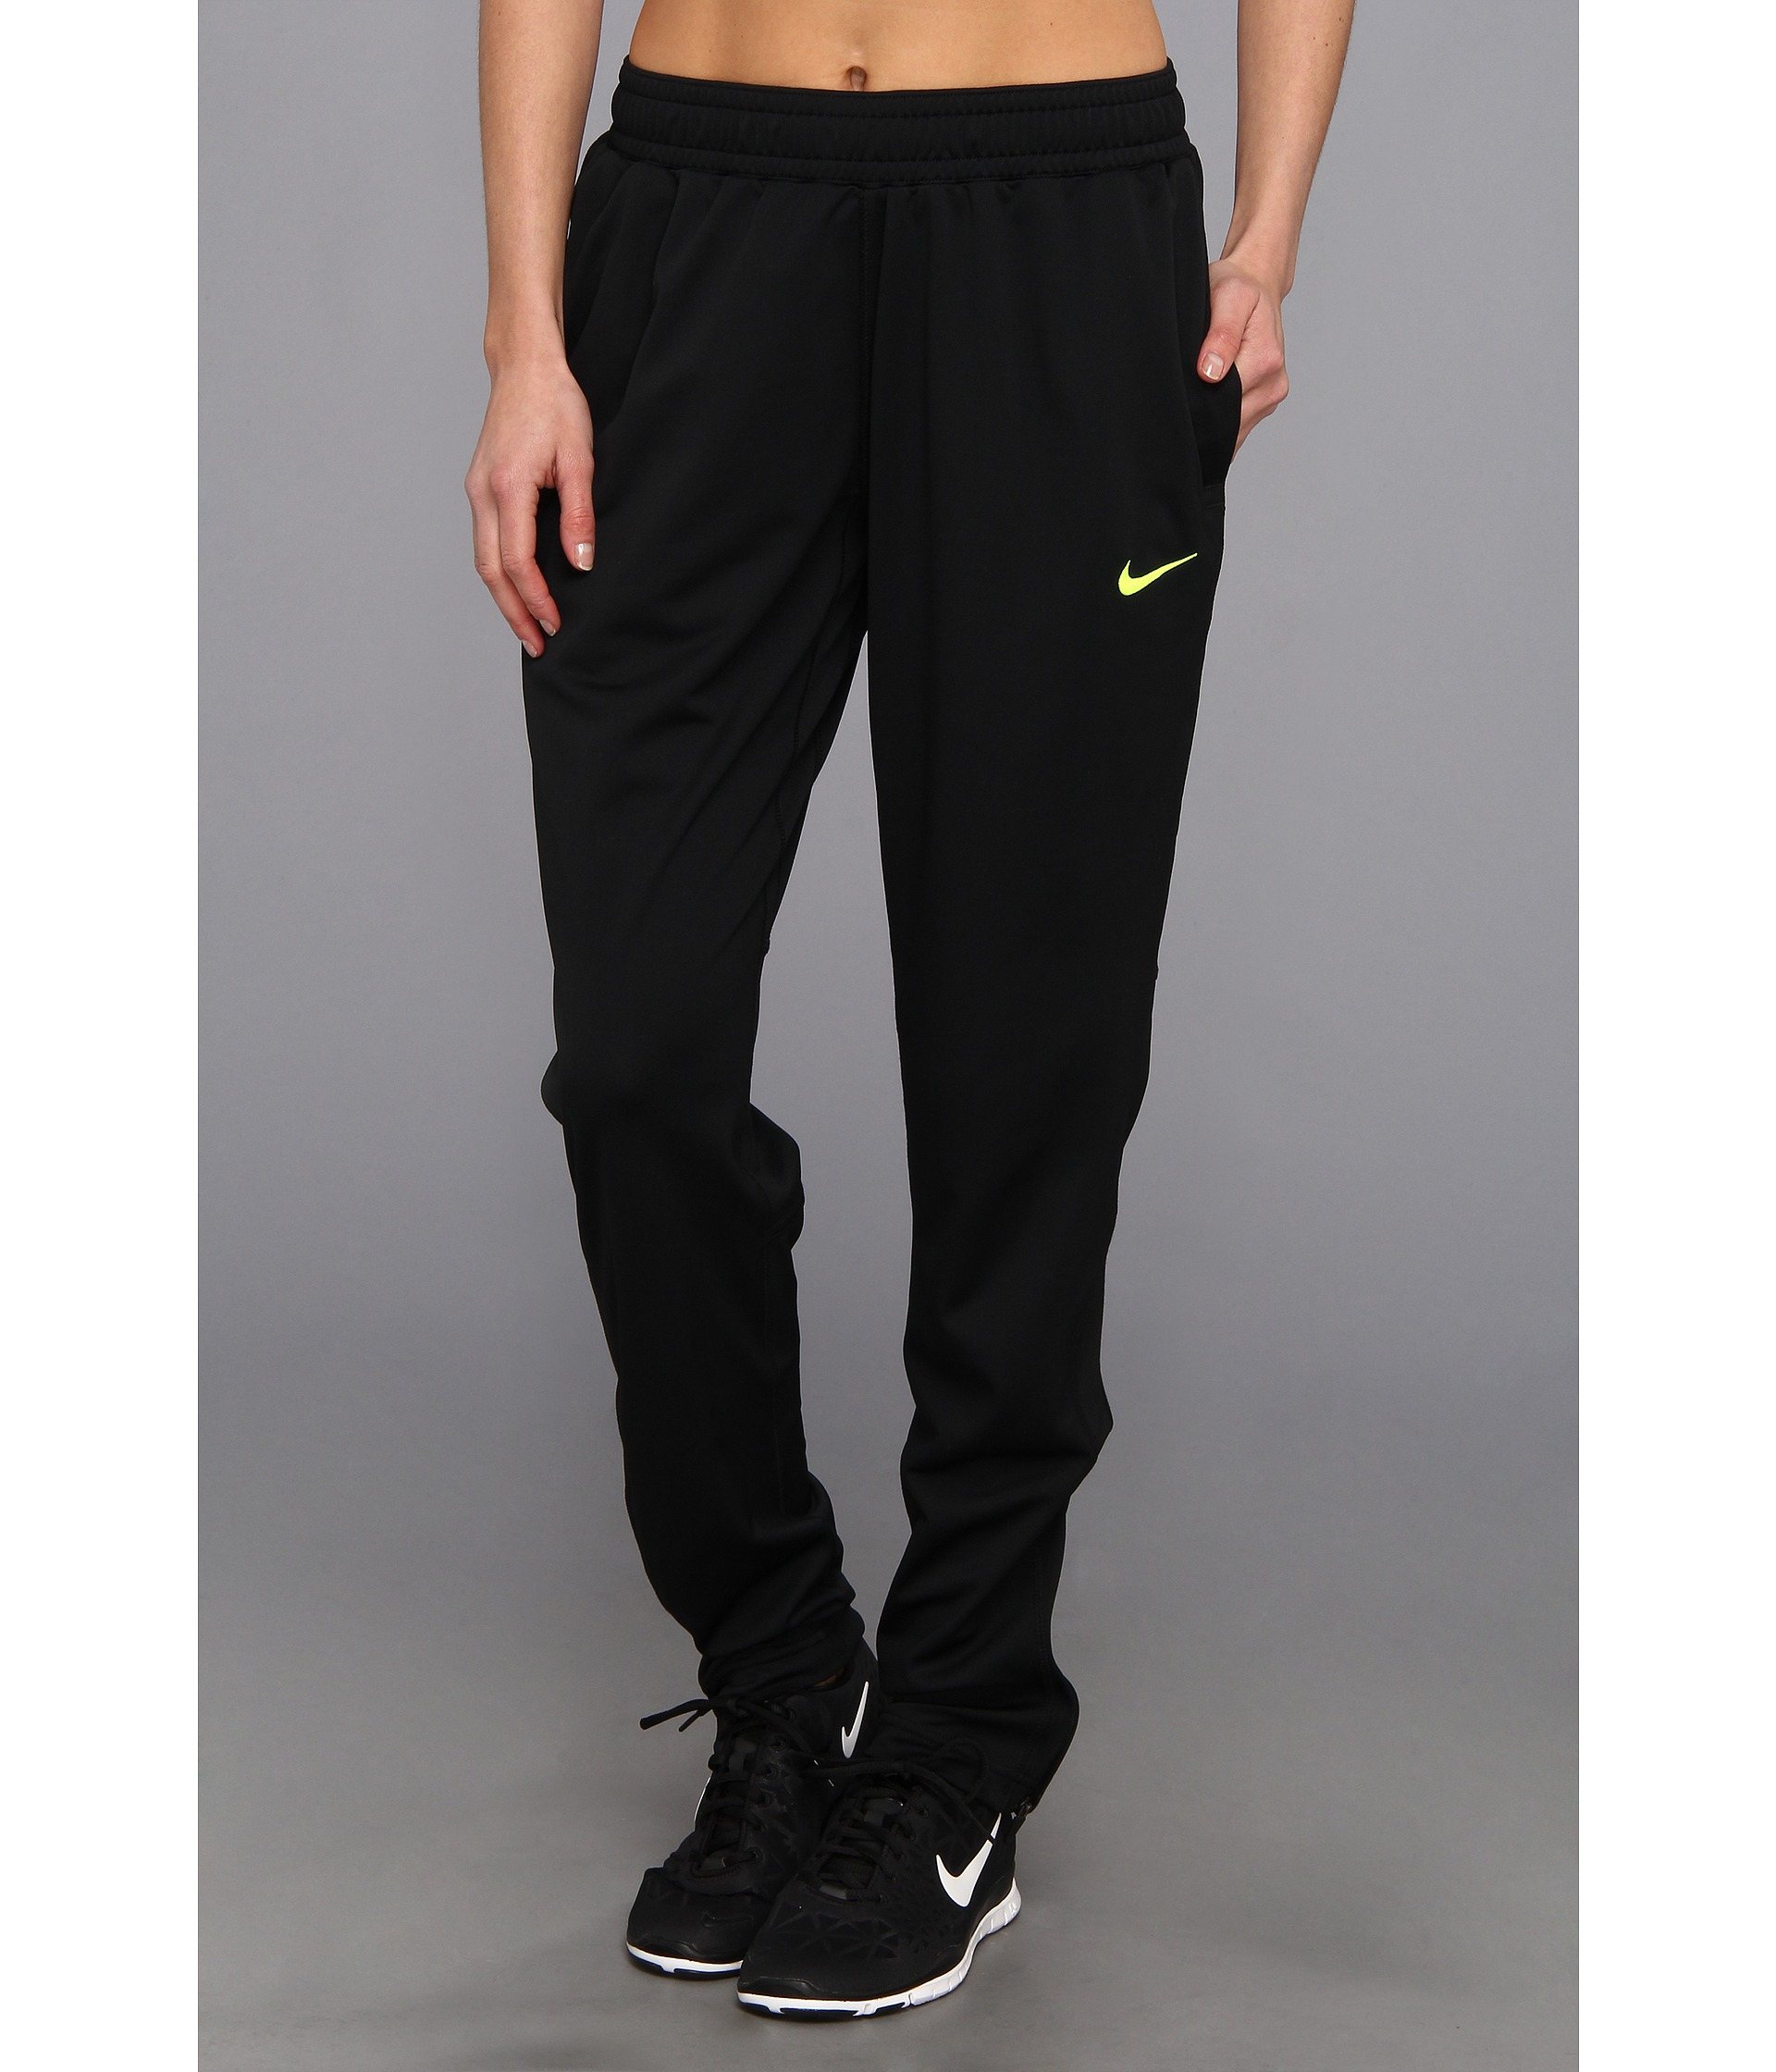 Wonderful 100 Original Nike Women39s Original Quality Knit Sweatpants Free